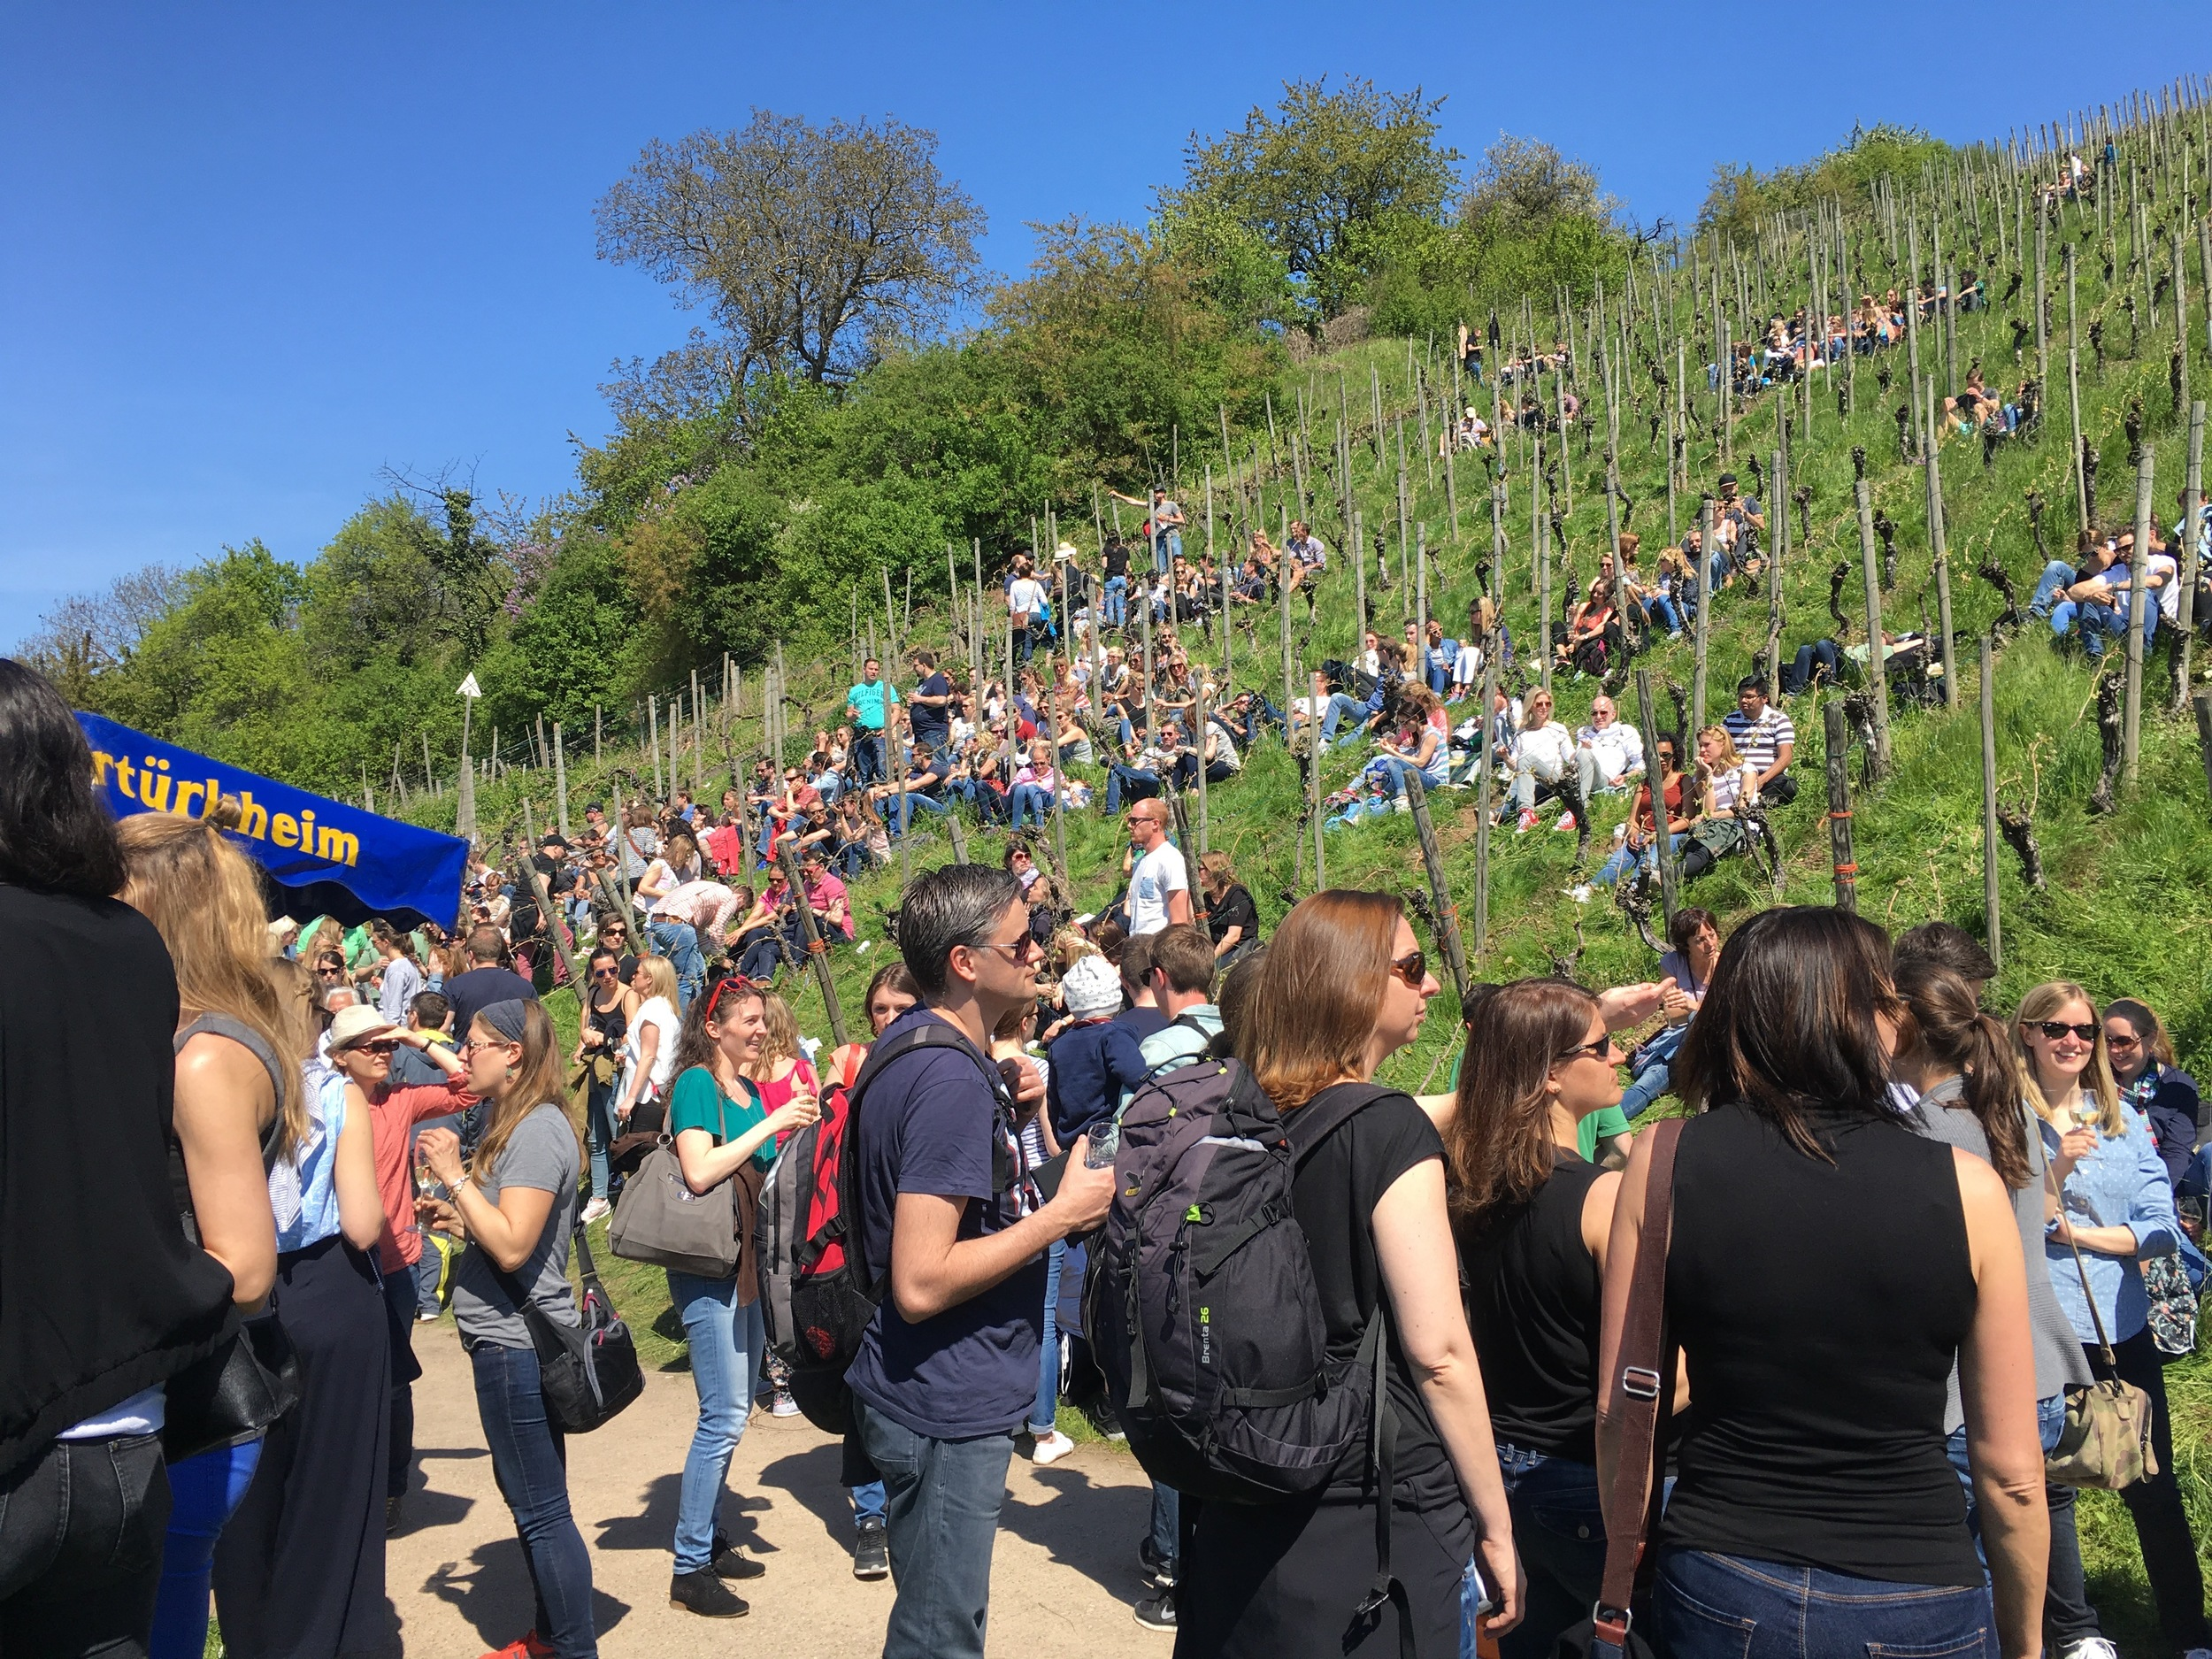 The crowds along the wine walk